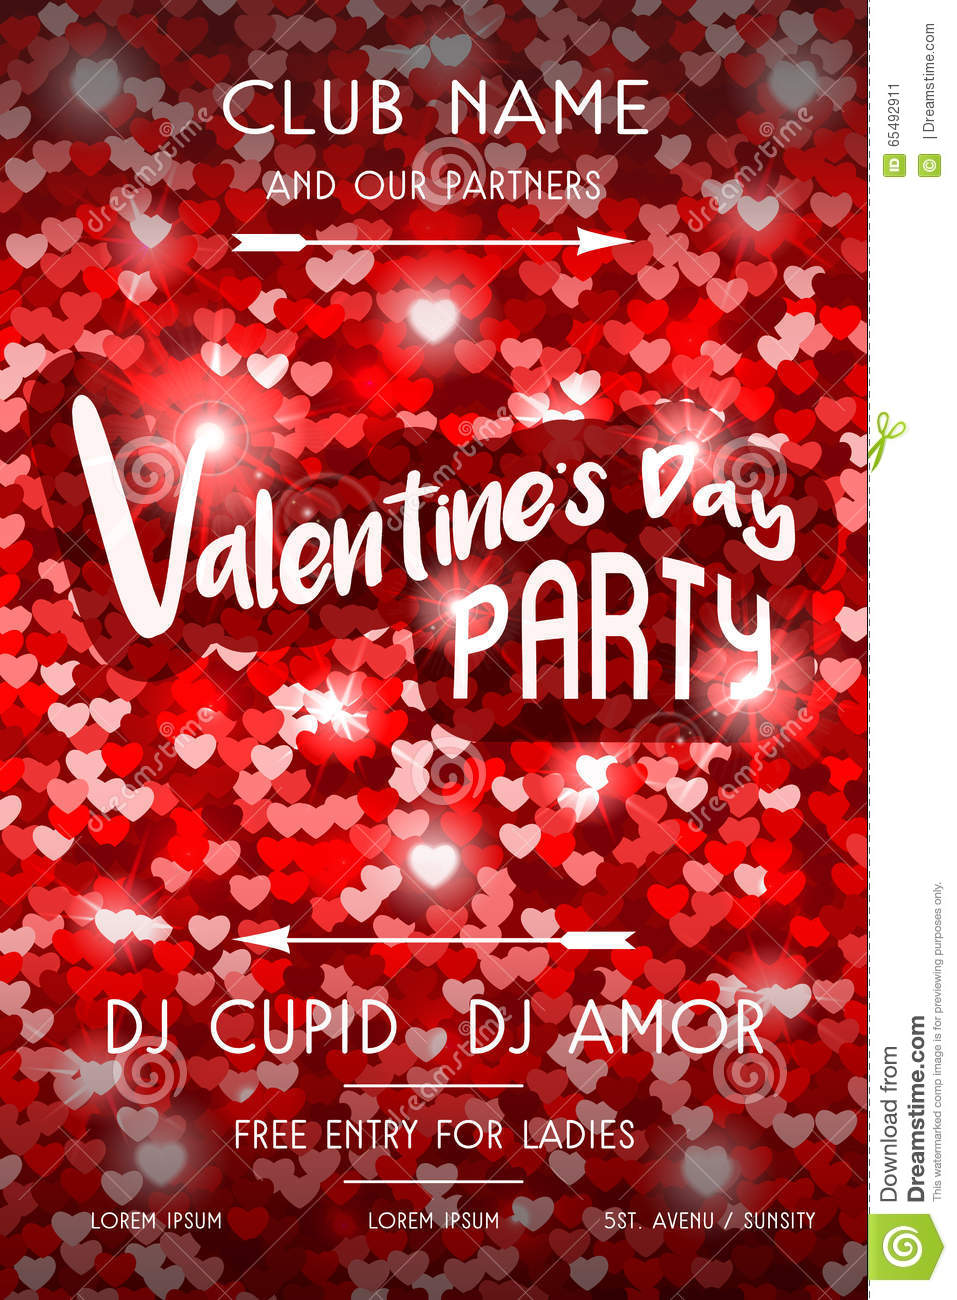 Valentines Day Party Flyer stock vector. Image of arrows - 65492911